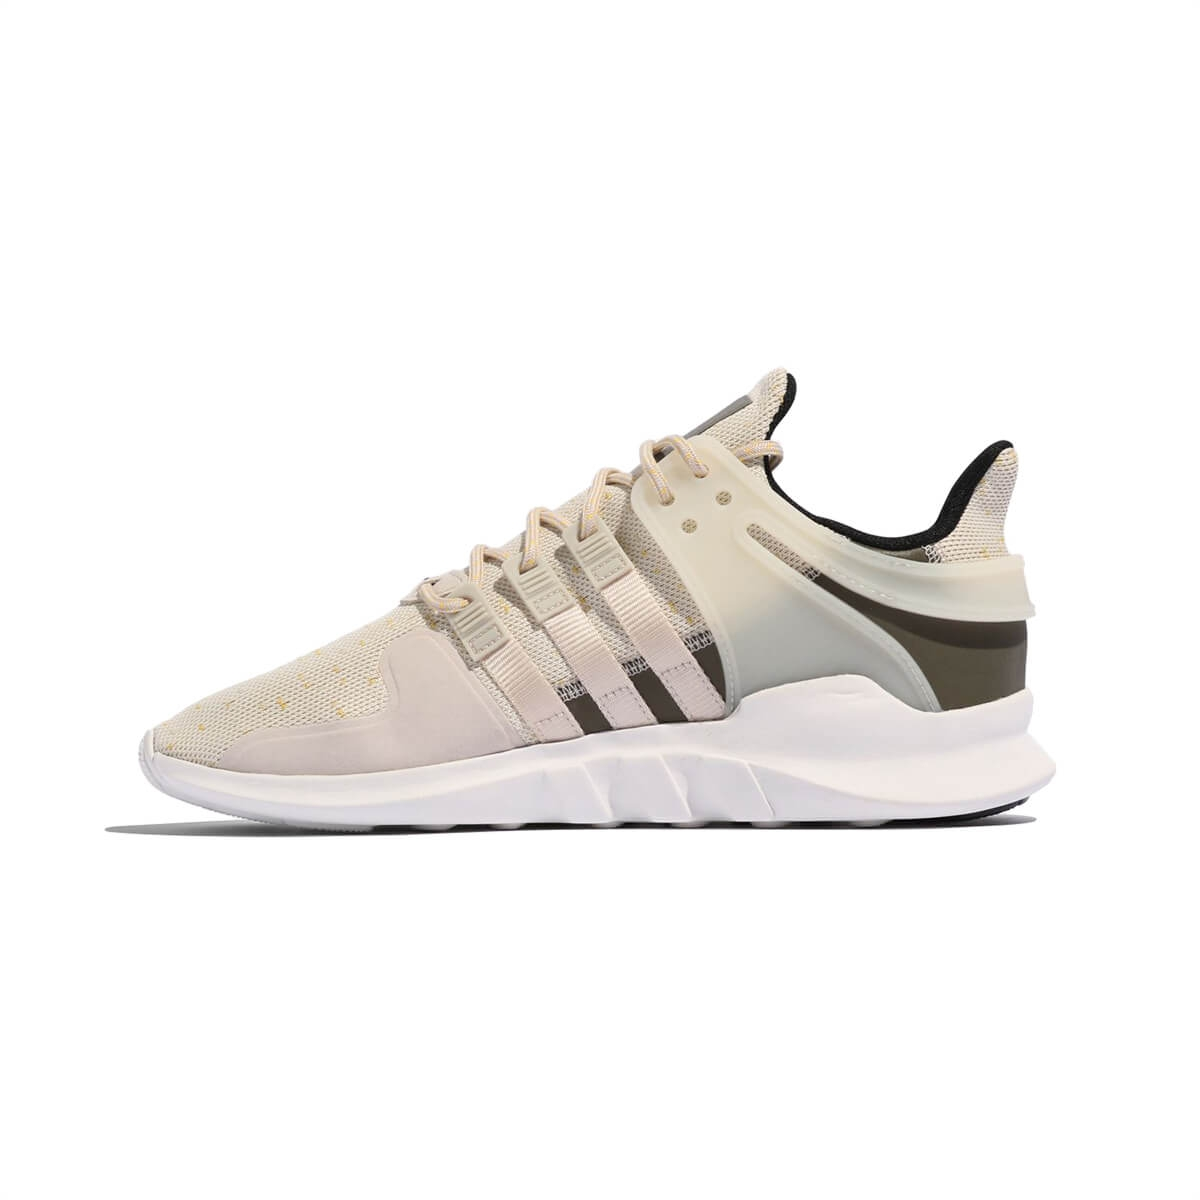 New-Authentic-Adidas-EQT-SUPPORT-ADV-Men-Fashion-Shoes-Mid-Sneakers-White-Grey thumbnail 15